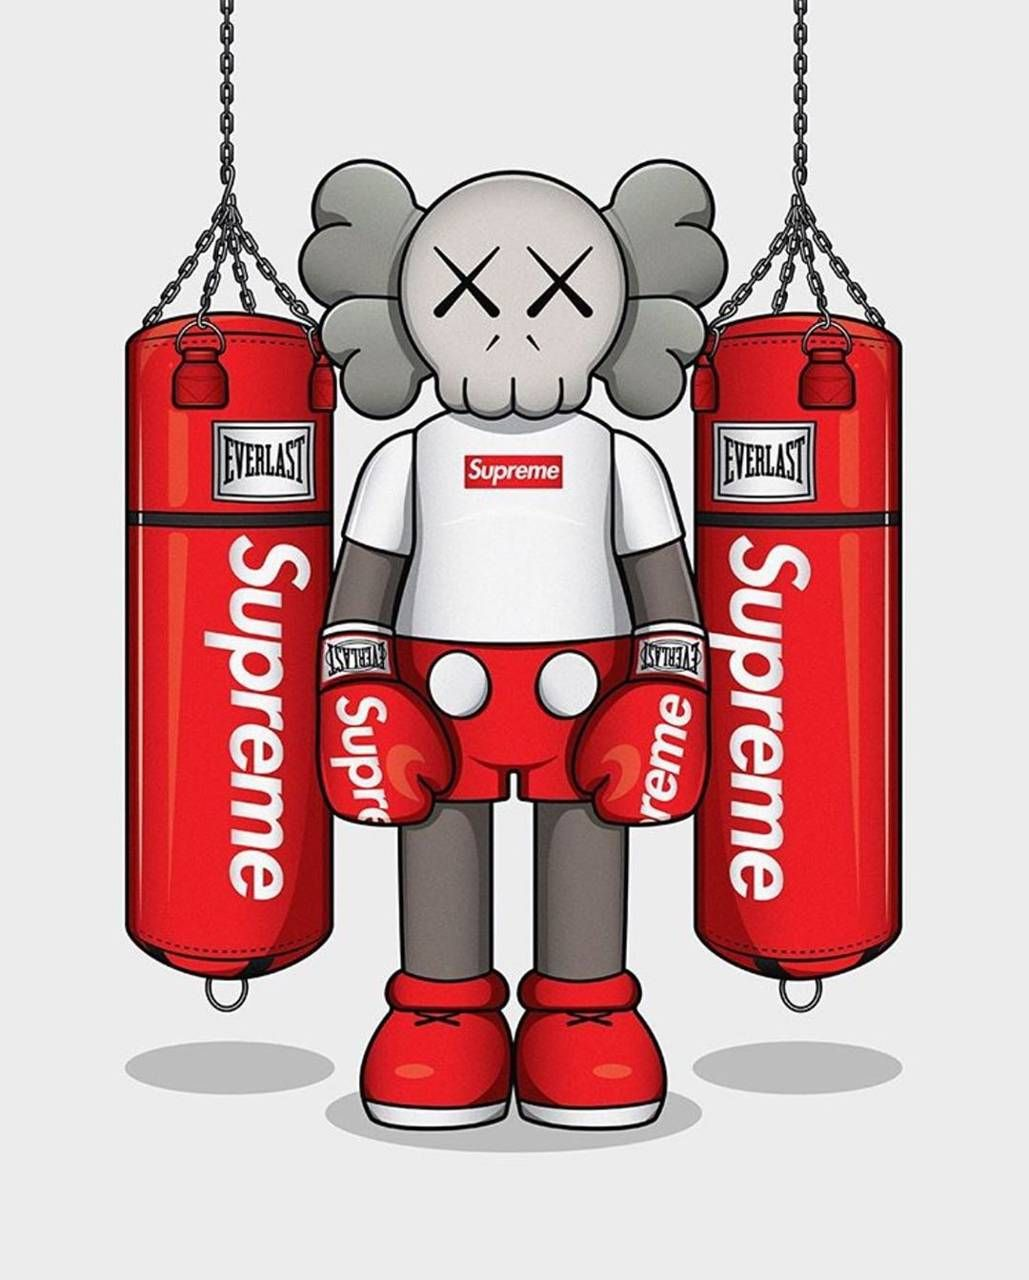 Kaws X Supreme Wallpaper By Mysterysoul Ab Free On Zedge Supreme Wallpaper Supreme Iphone Wallpaper Supreme Wallpaper Hd